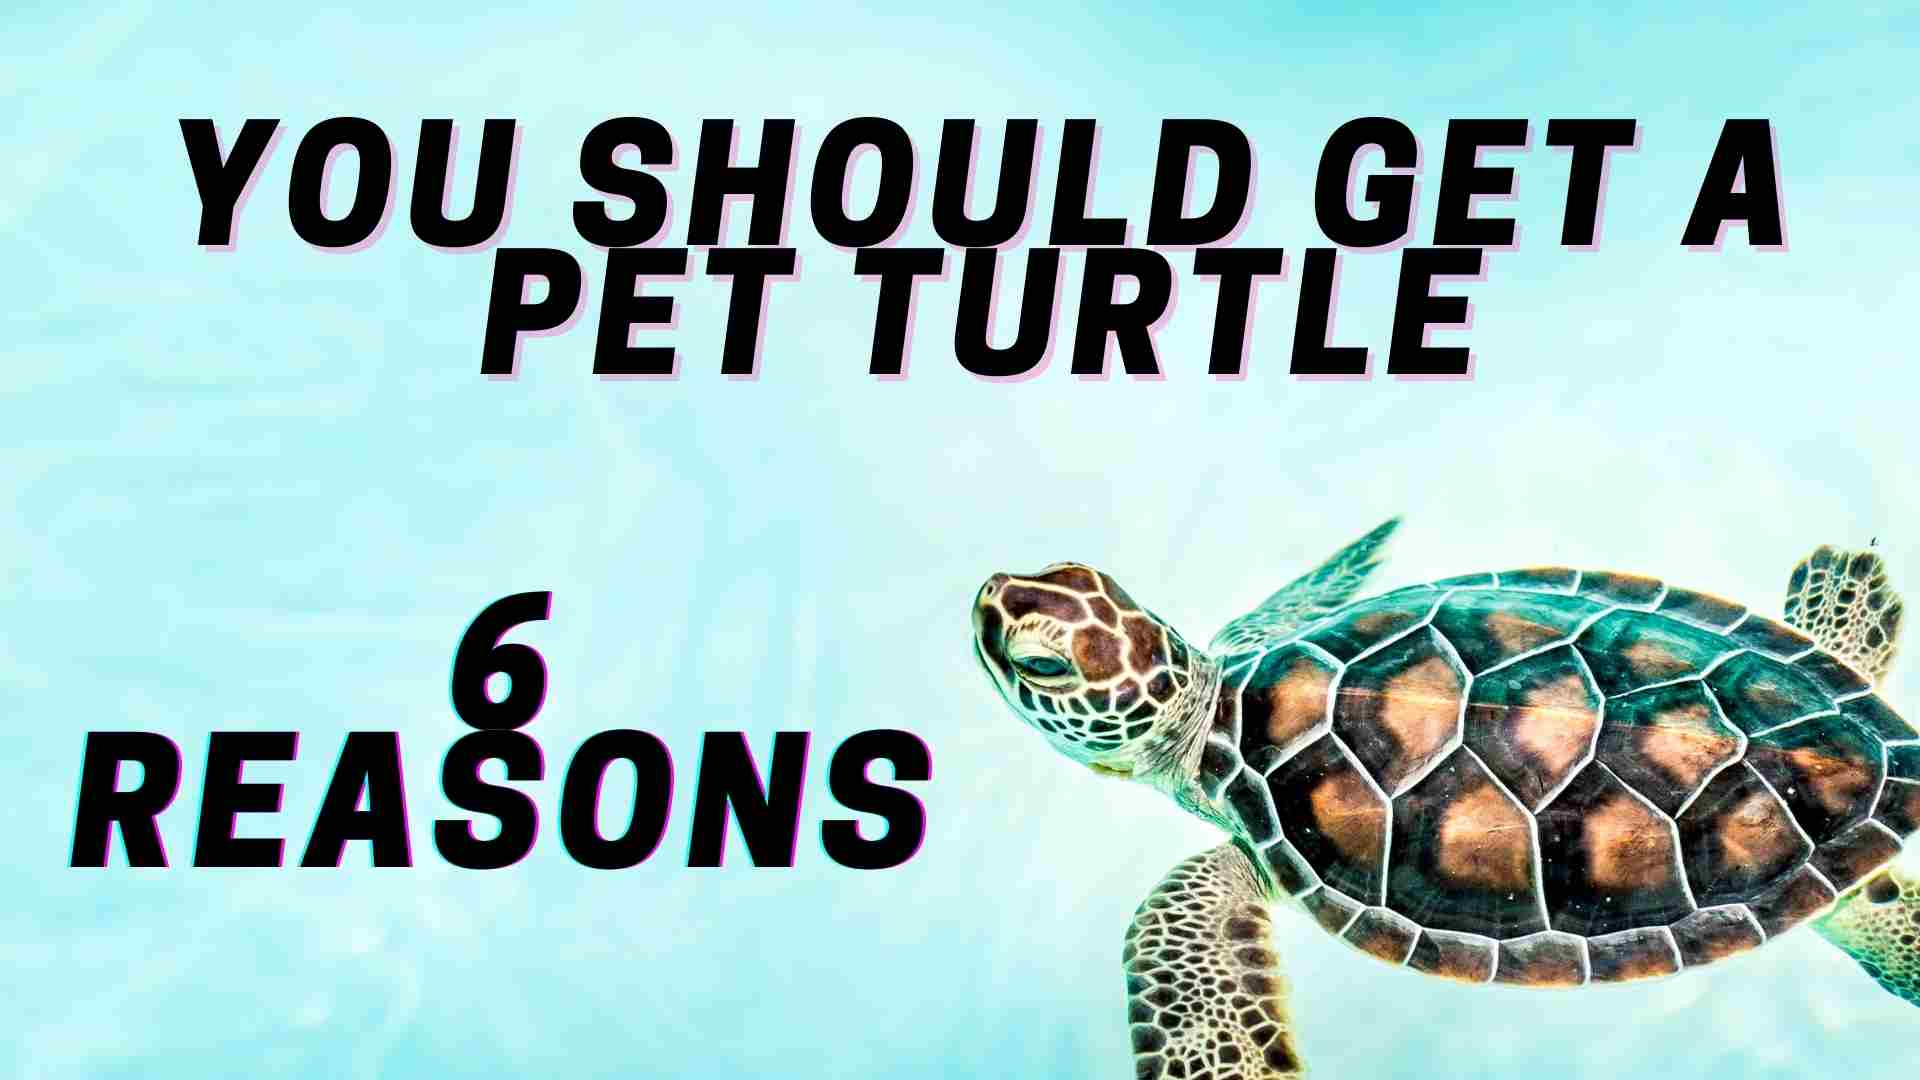 6 Reasons Why You Should Get a Pet Turtle (1)